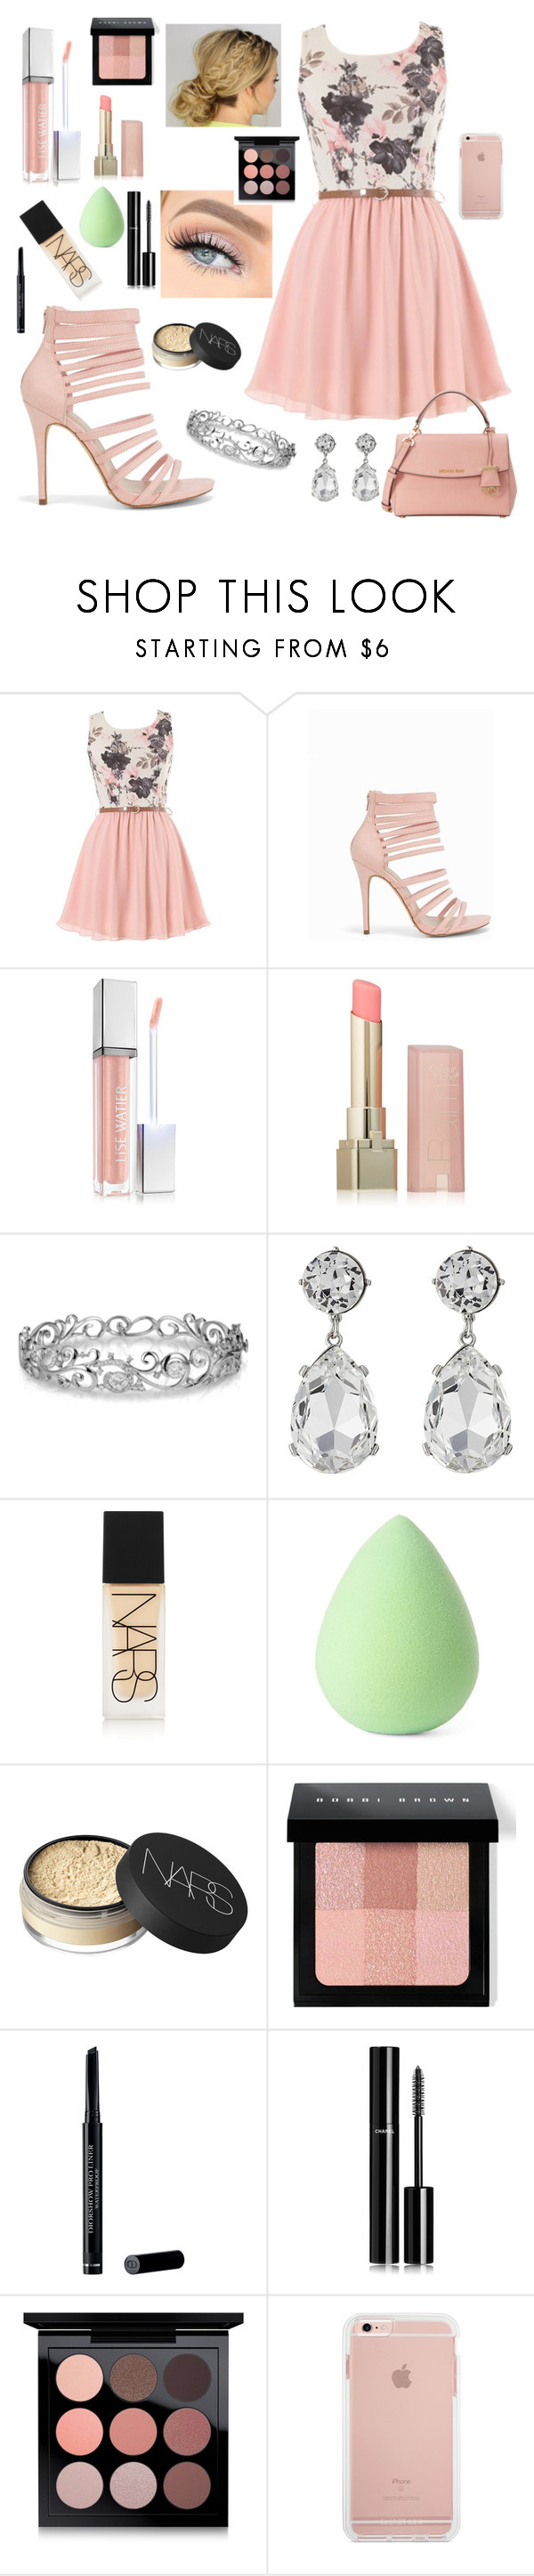 """""""Untitled #63"""" by hannahbethhill ❤ liked on Polyvore featuring New Look, Lise Watier, L'Oréal Paris, Effy Jewelry, Kenneth Jay Lane, NARS Cosmetics, Earth Therapeutics, Bobbi Brown Cosmetics, Christian Dior and Chanel"""